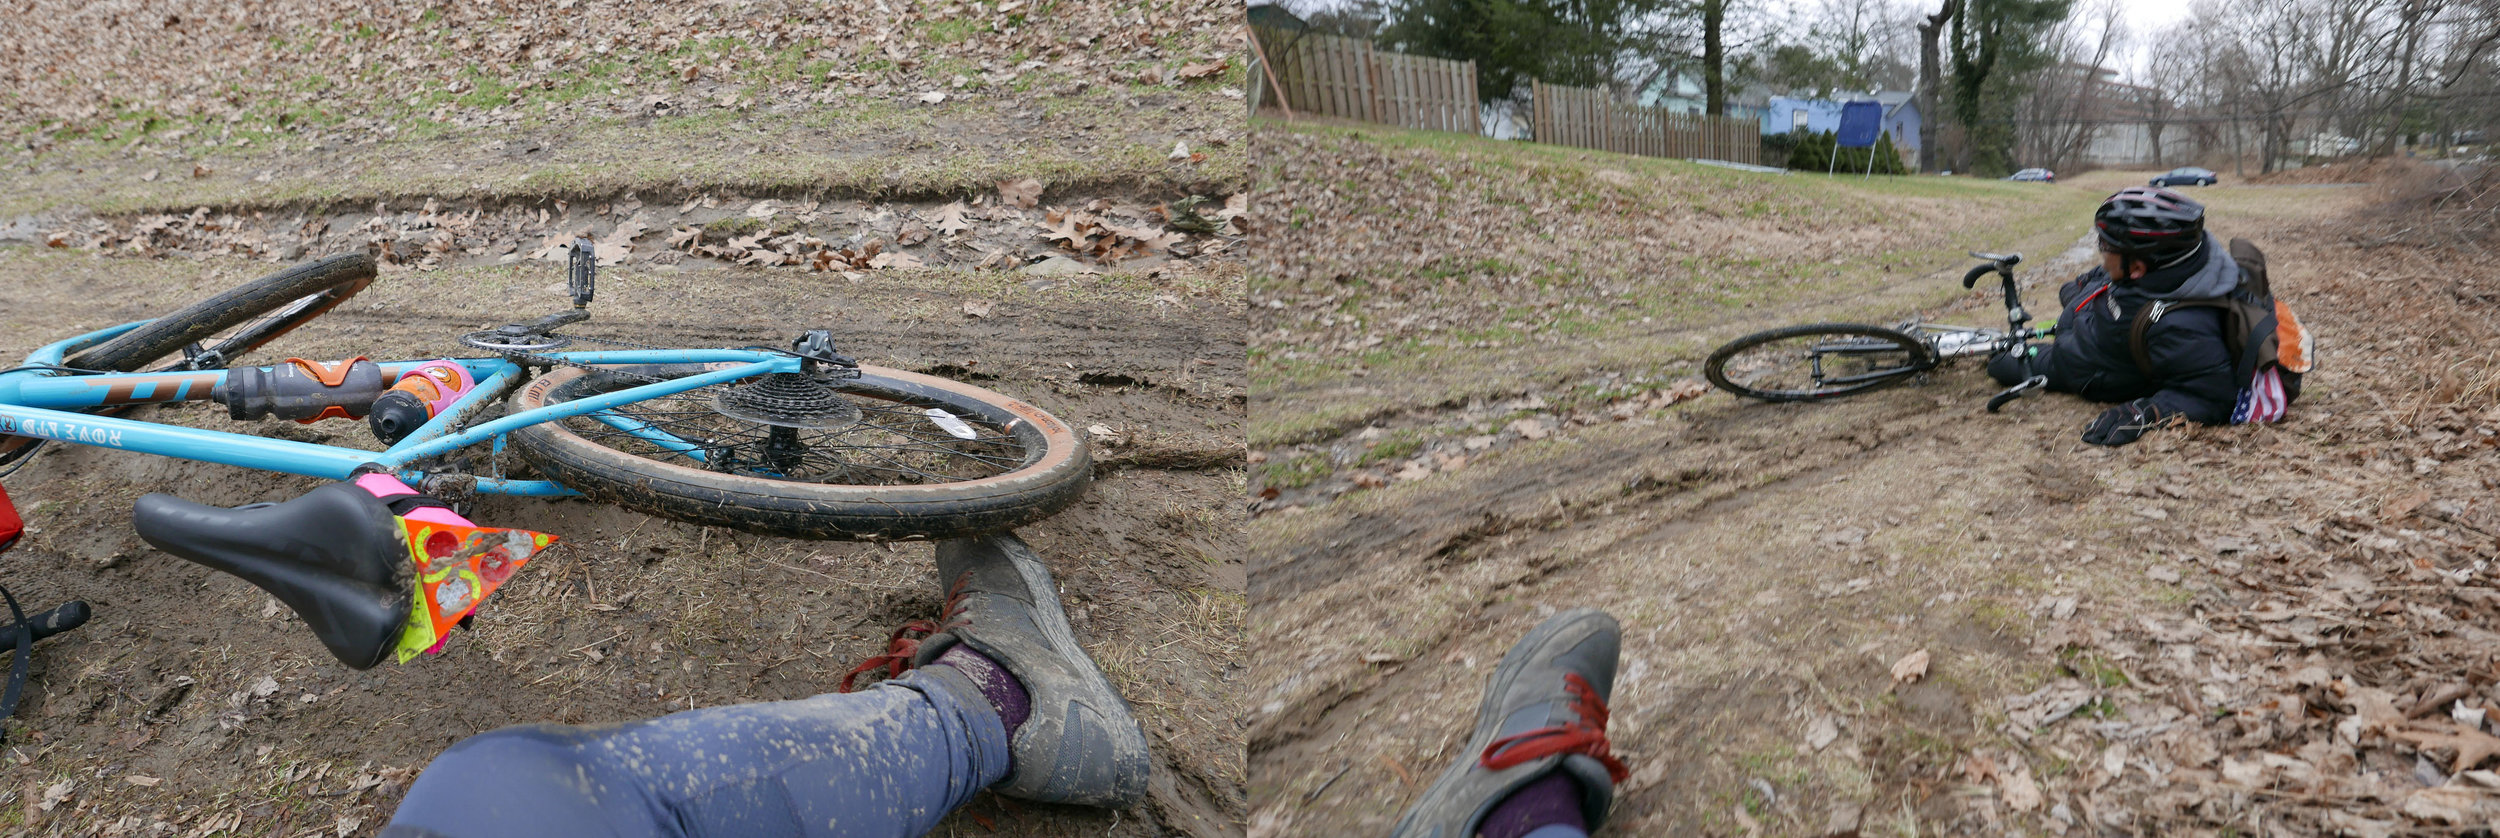 Man (men) Down! Scenes of a double muddy spill. On the trail, your choices were to ride in the muddy center rut, or take your changes on the off-camber slick grass/ice/fallen leaves on the sides of the trail.